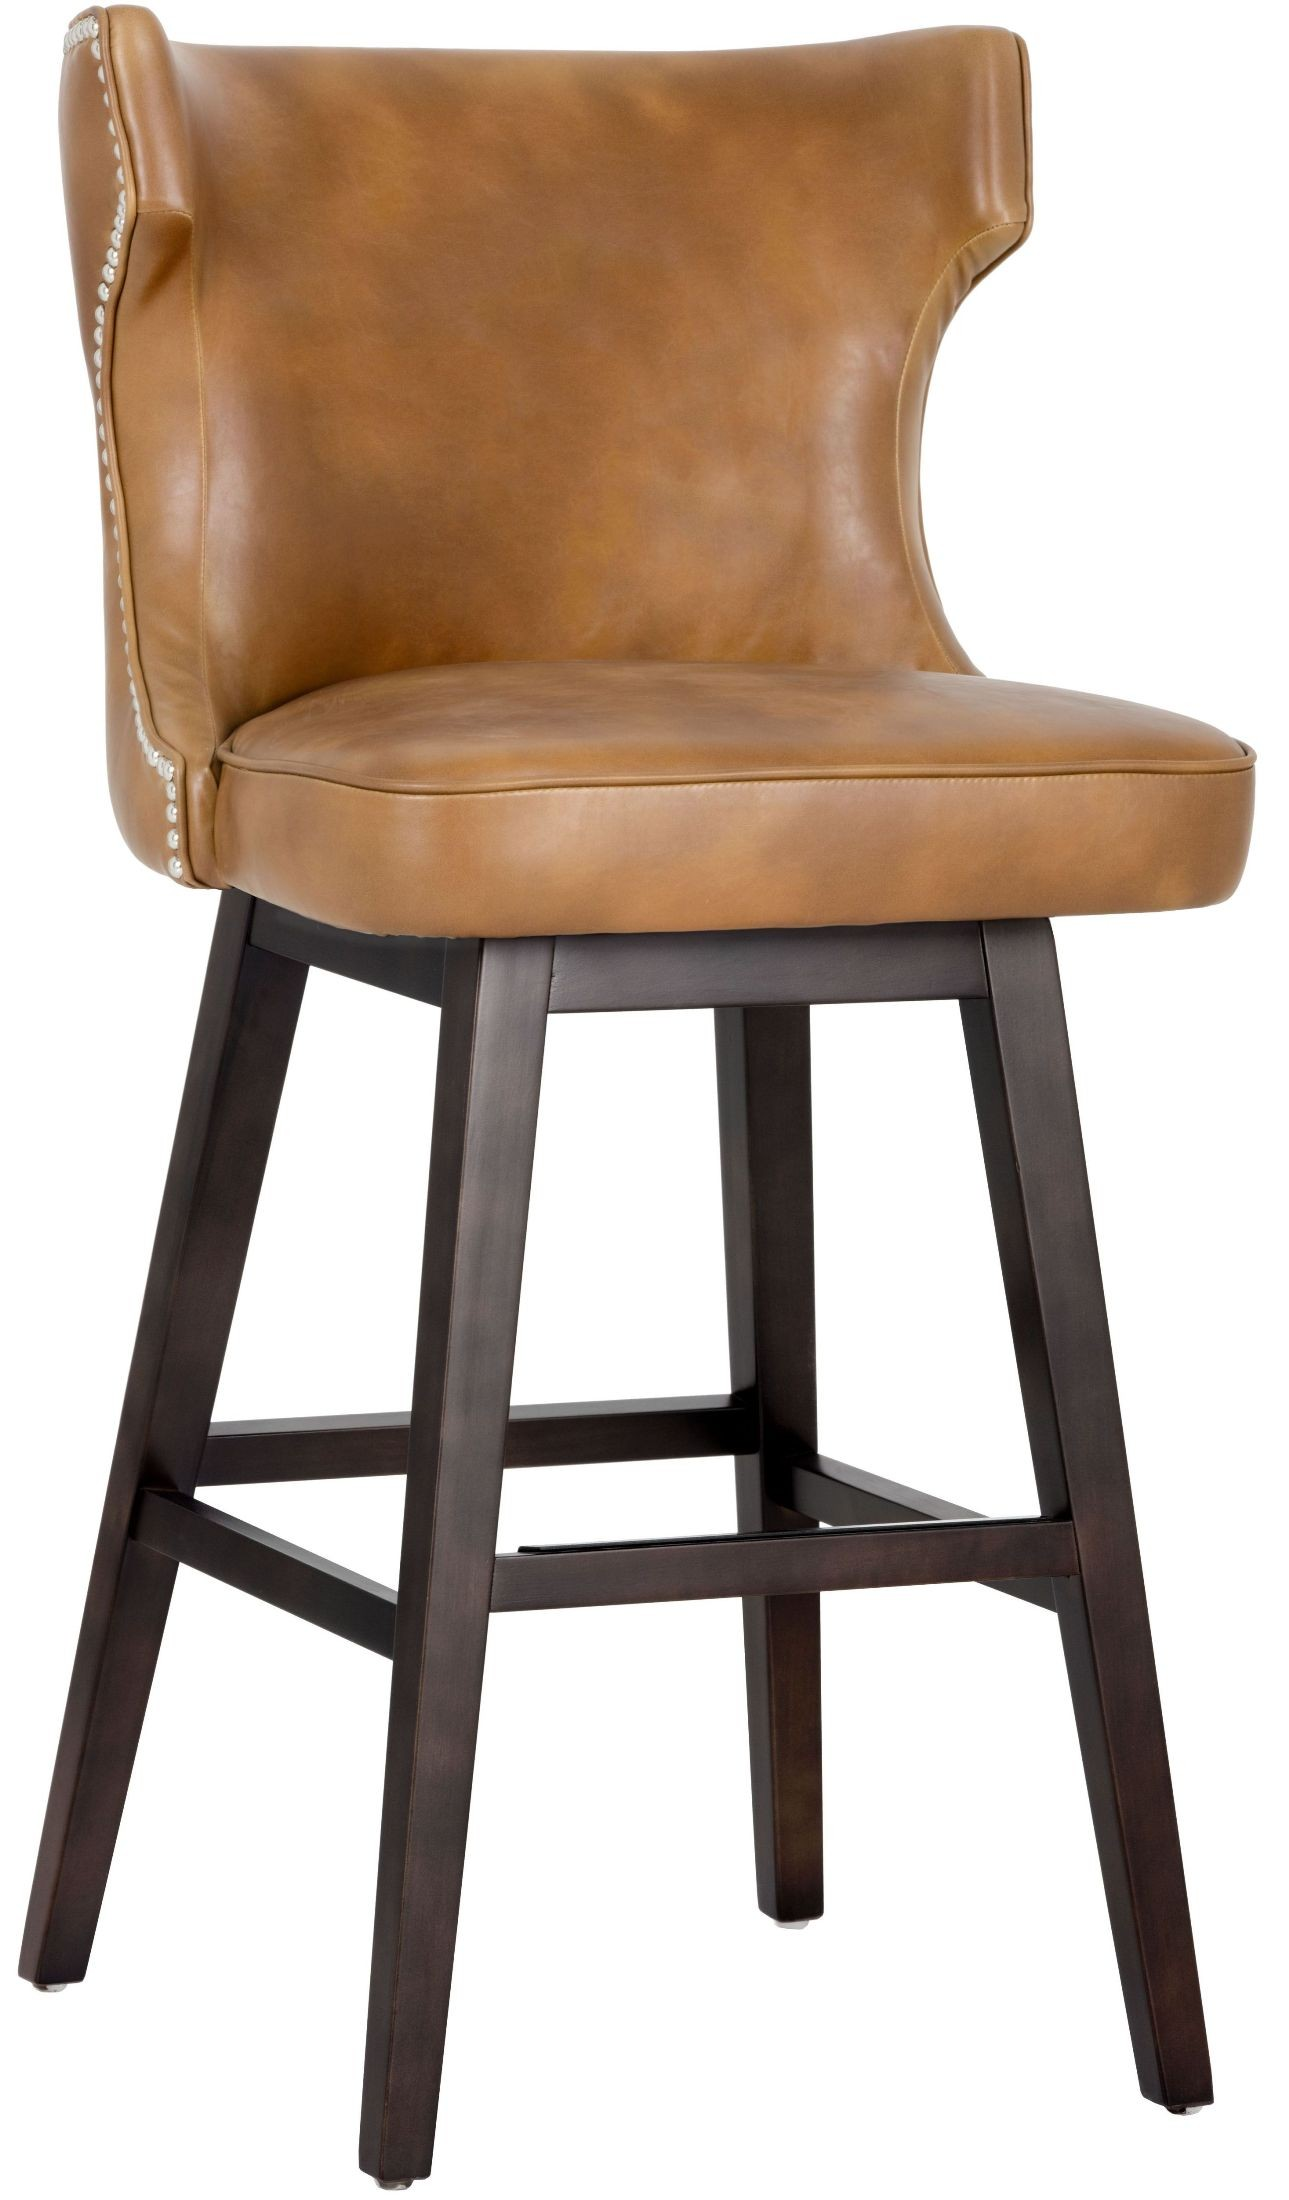 Neville Tobacco Tan Swivel Barstool From Sunpan Coleman